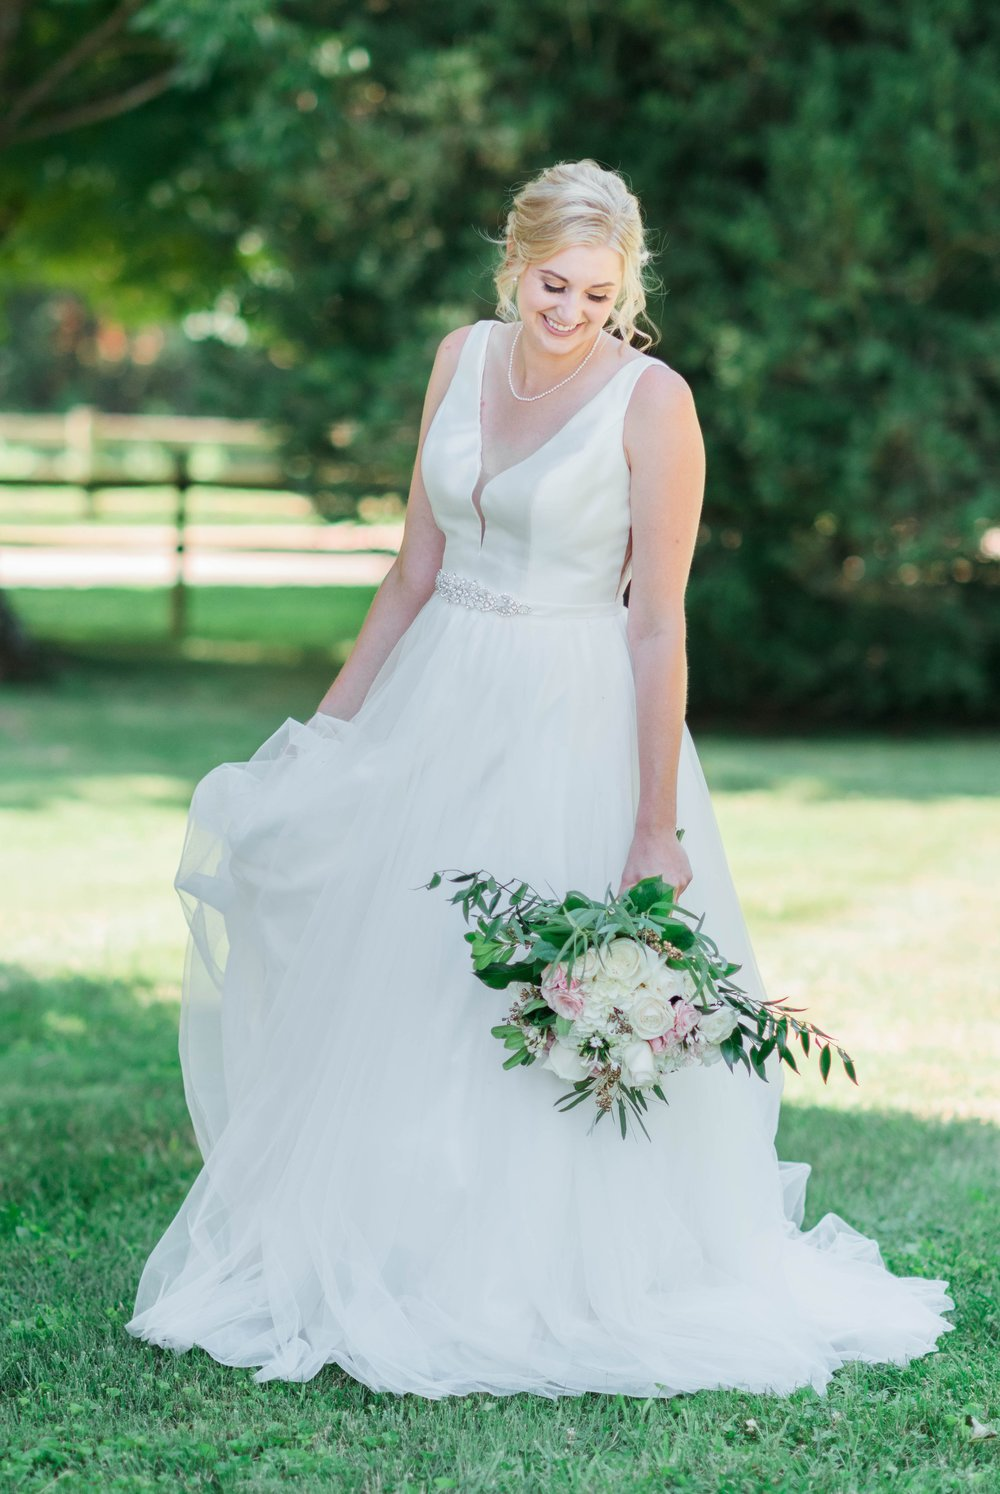 westmanorestate_entwinedevents_lynchburgweddingphotographer_Virginiaweddingphotographer_kateyam 33.jpg